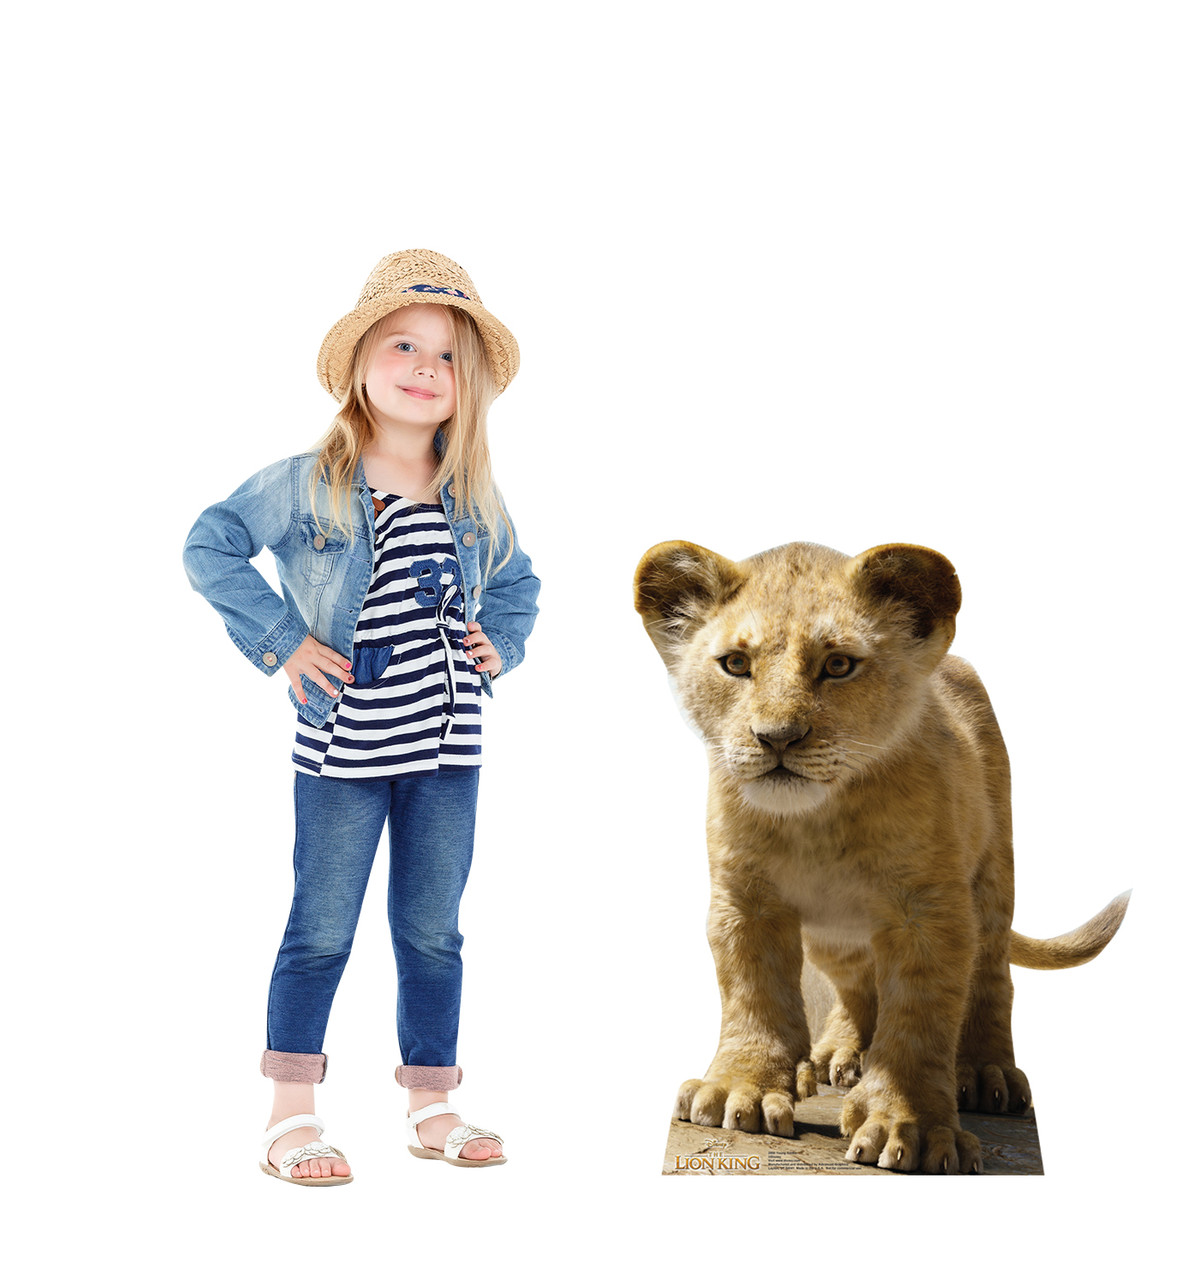 Life-size cardboard standee of Young Simba from Disney's live action film The Lion King with Lifesize